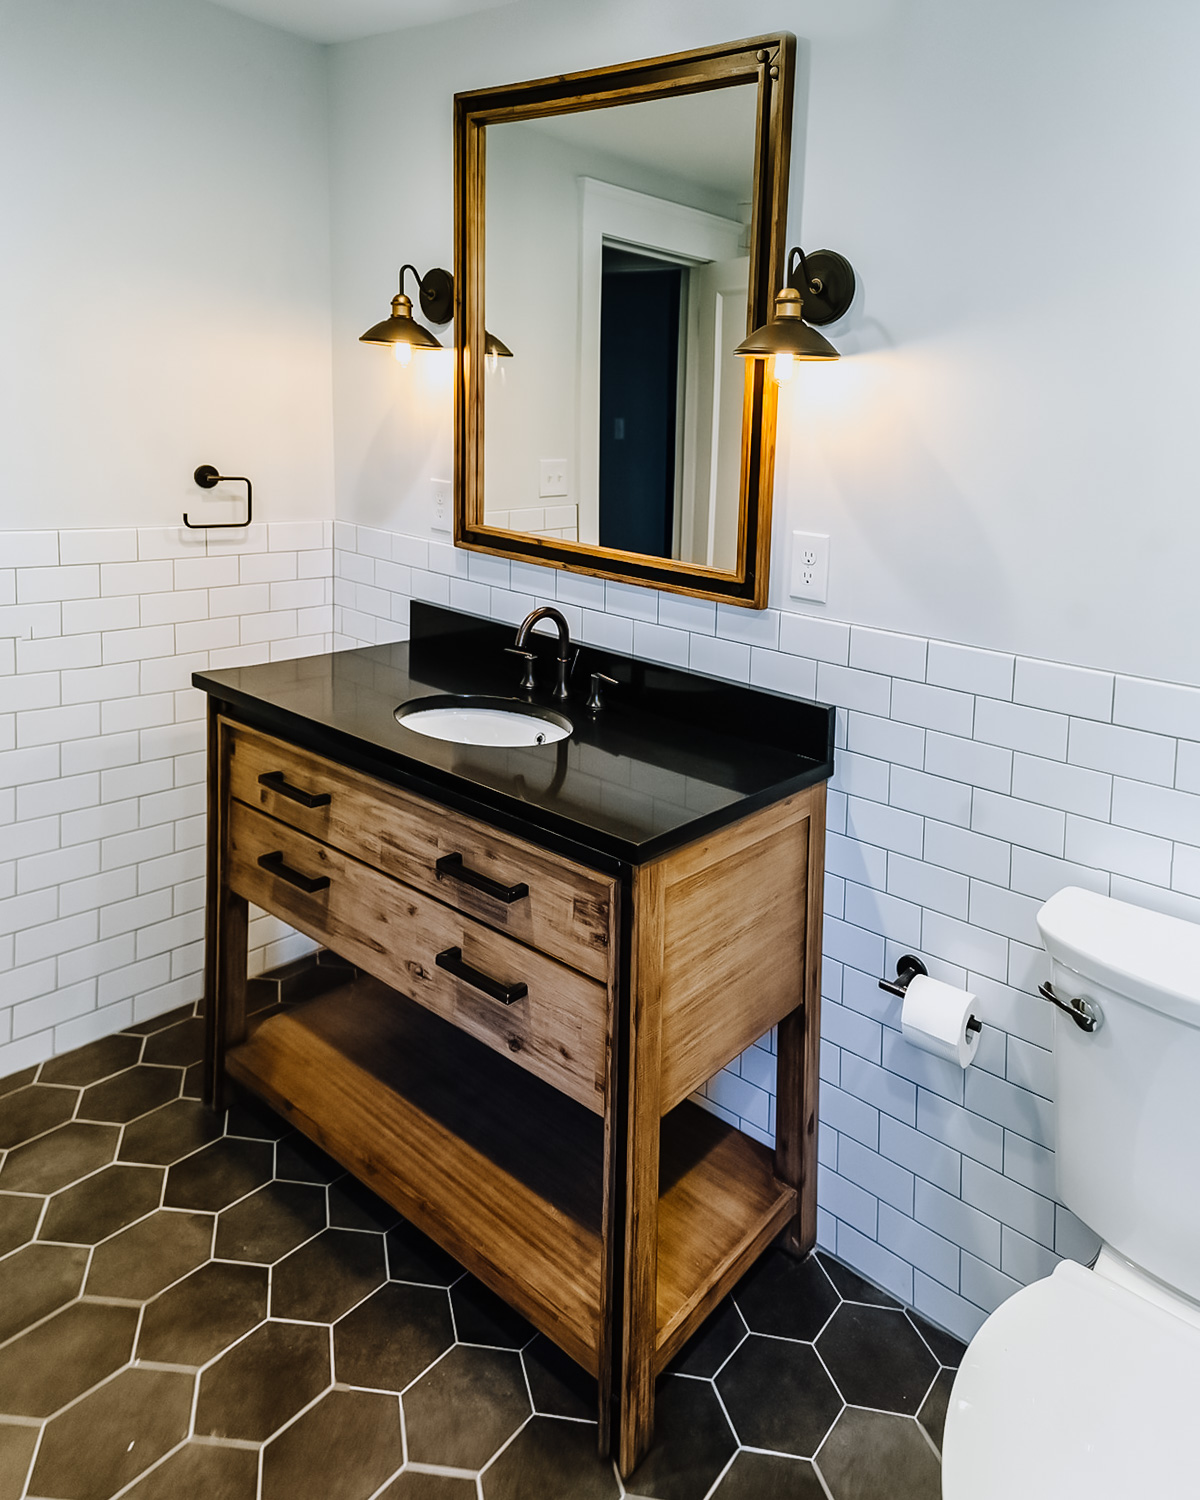 - Instead of a color play, this bathroom uses shapes to make a statement. We love the contrast of black and white, and rectangle and hexagon, of the wall and floor tile, giving a lovely palette for the natural wood vanity with black granite countertop, and ready for any accessories that homeowner might like to add to either add a pop of color or to layer on to these complex neutrals.